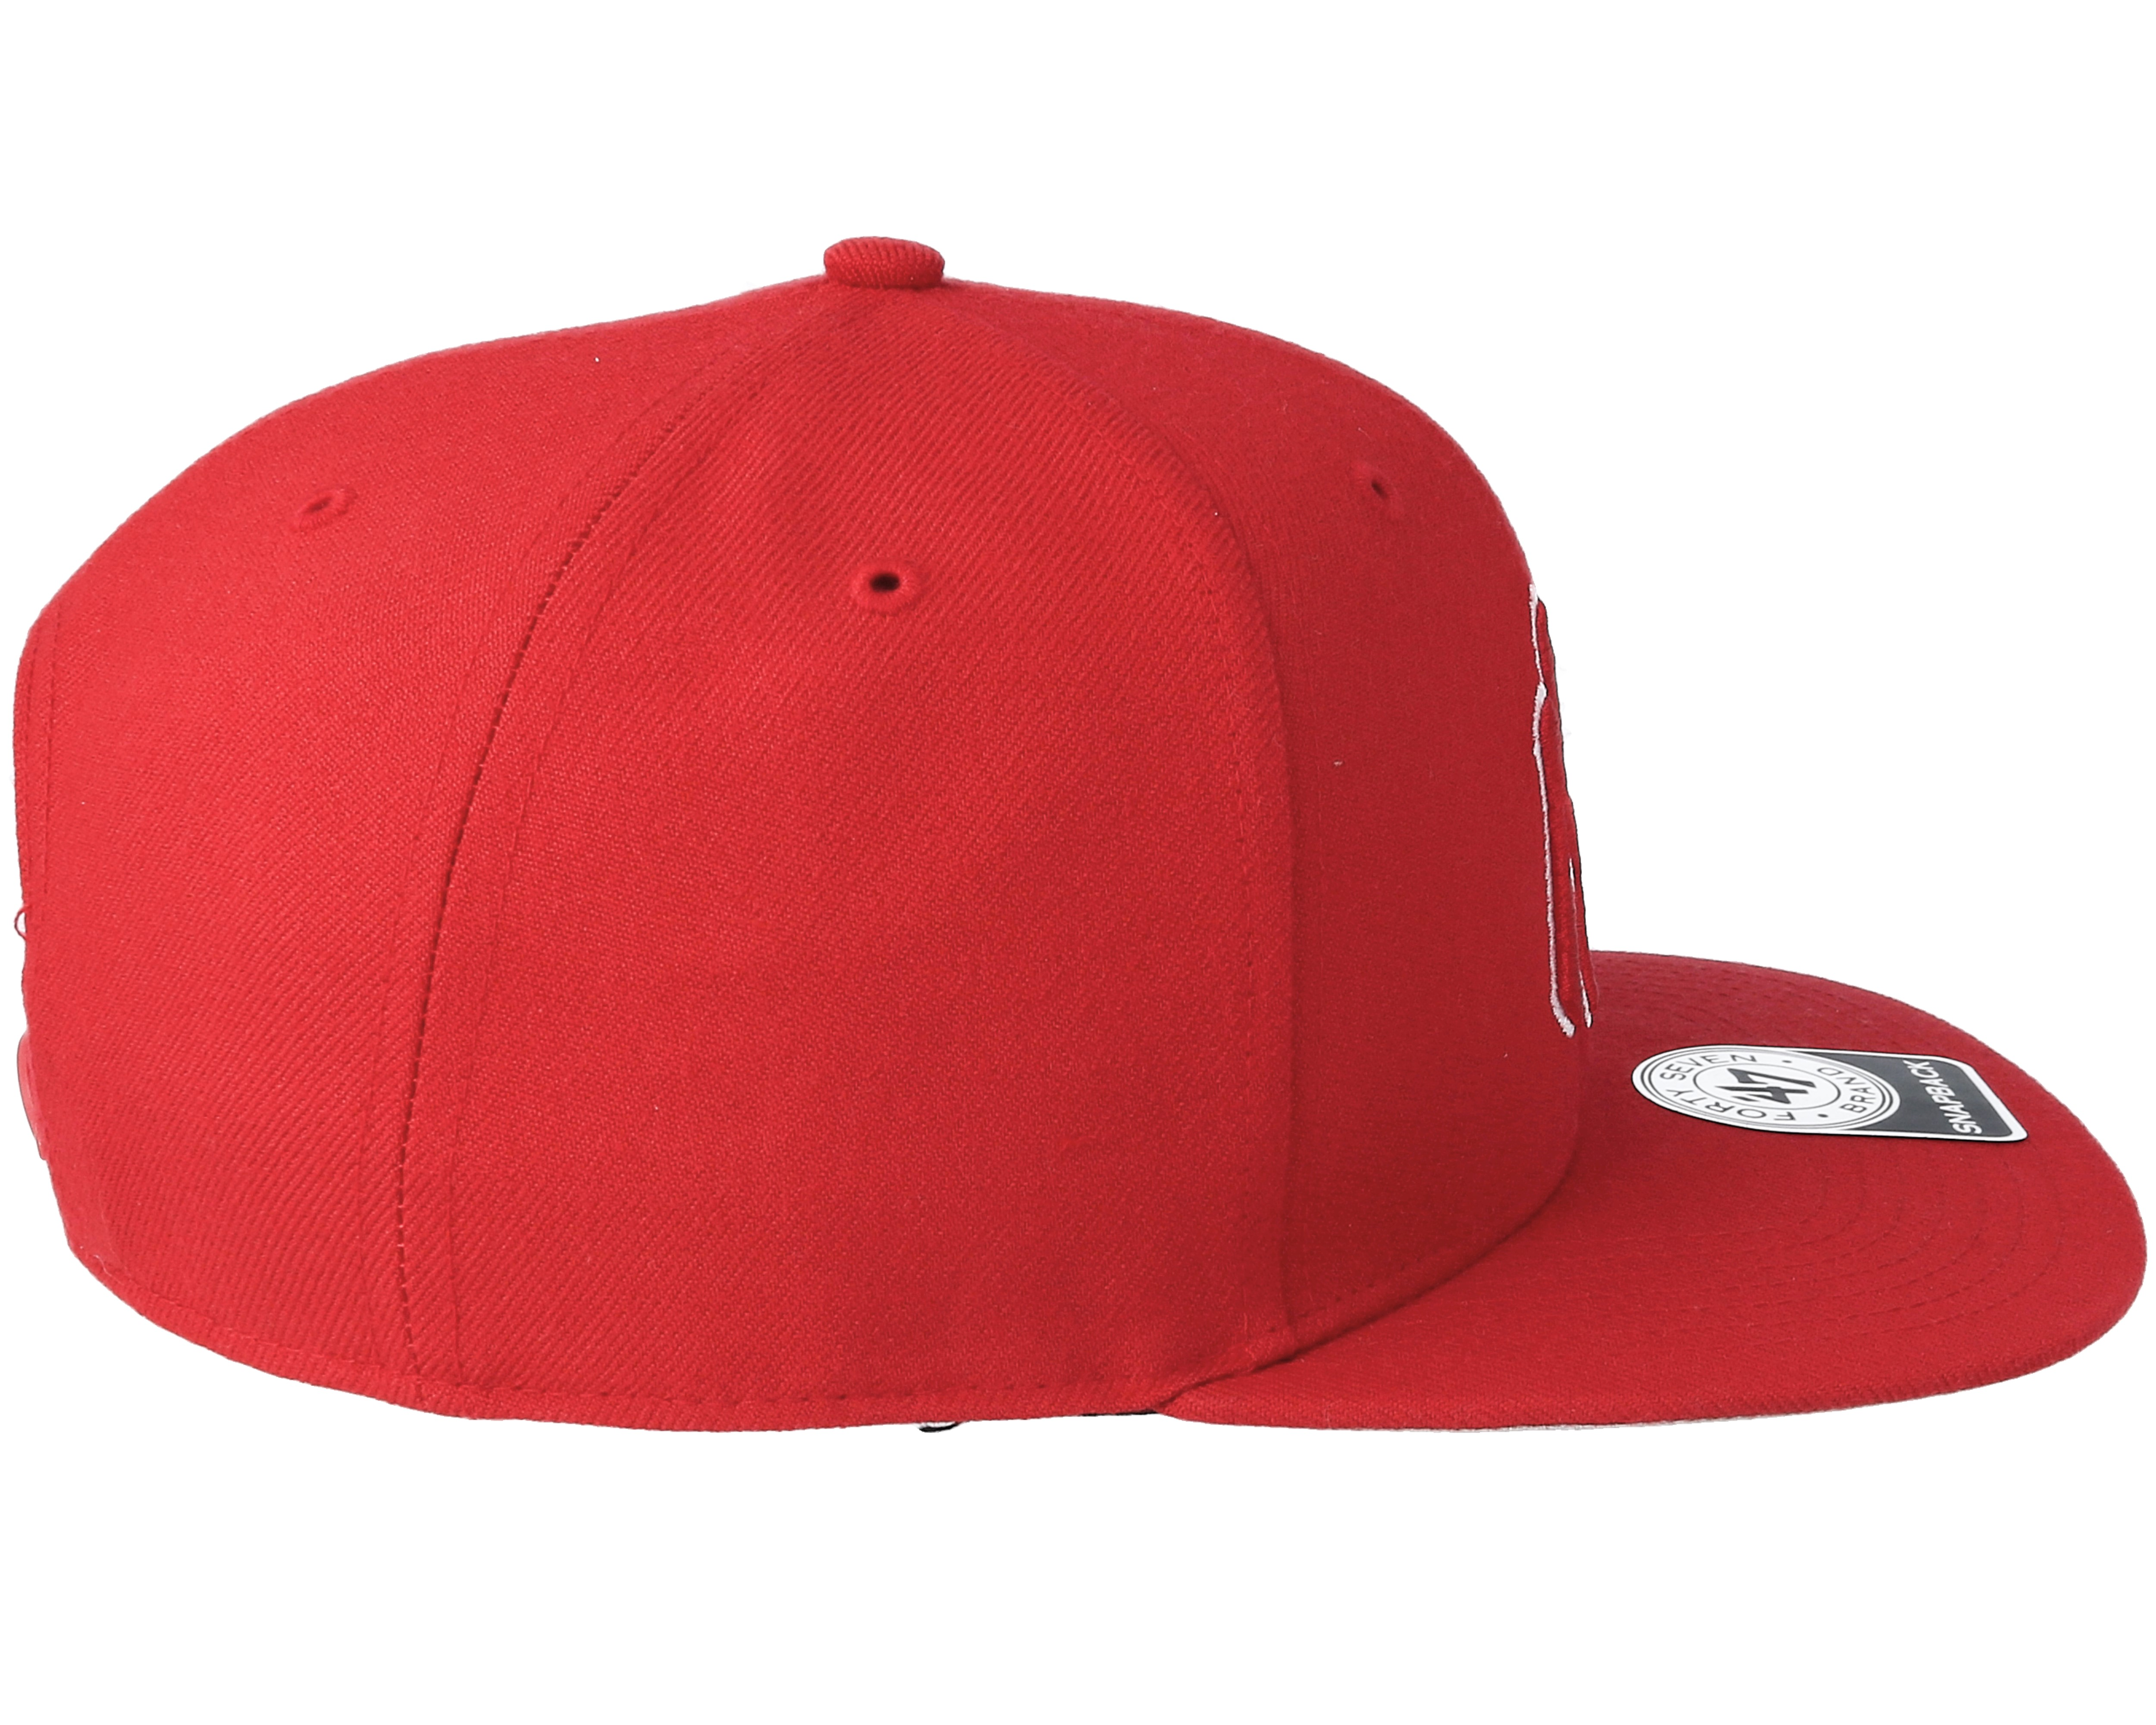 NY Yankees No Shot Red/Red Snapback - 47 Brand caps | Hatstore.co.uk